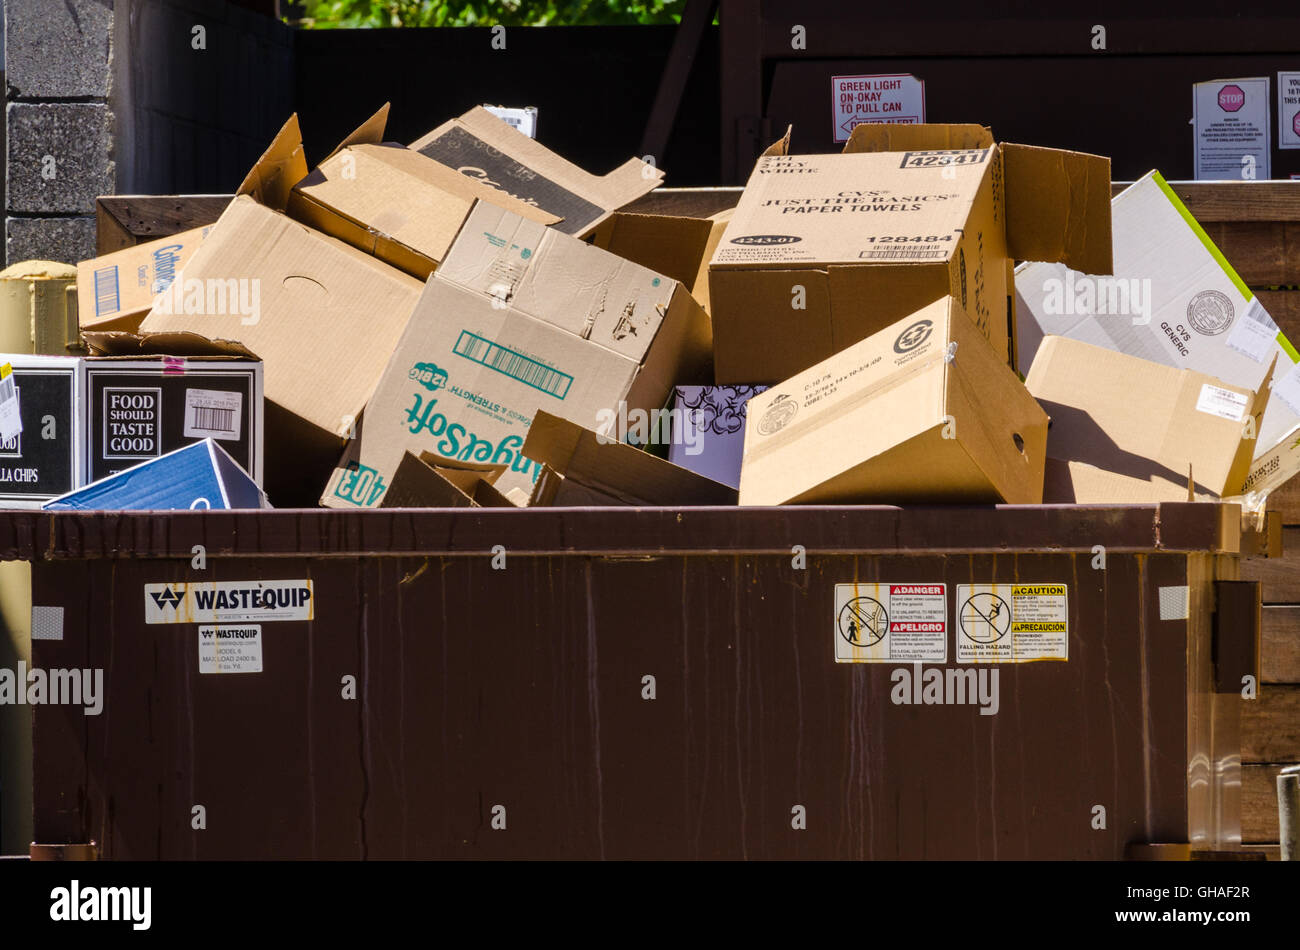 A trash receptacle full of cardboard boxes - Stock Image